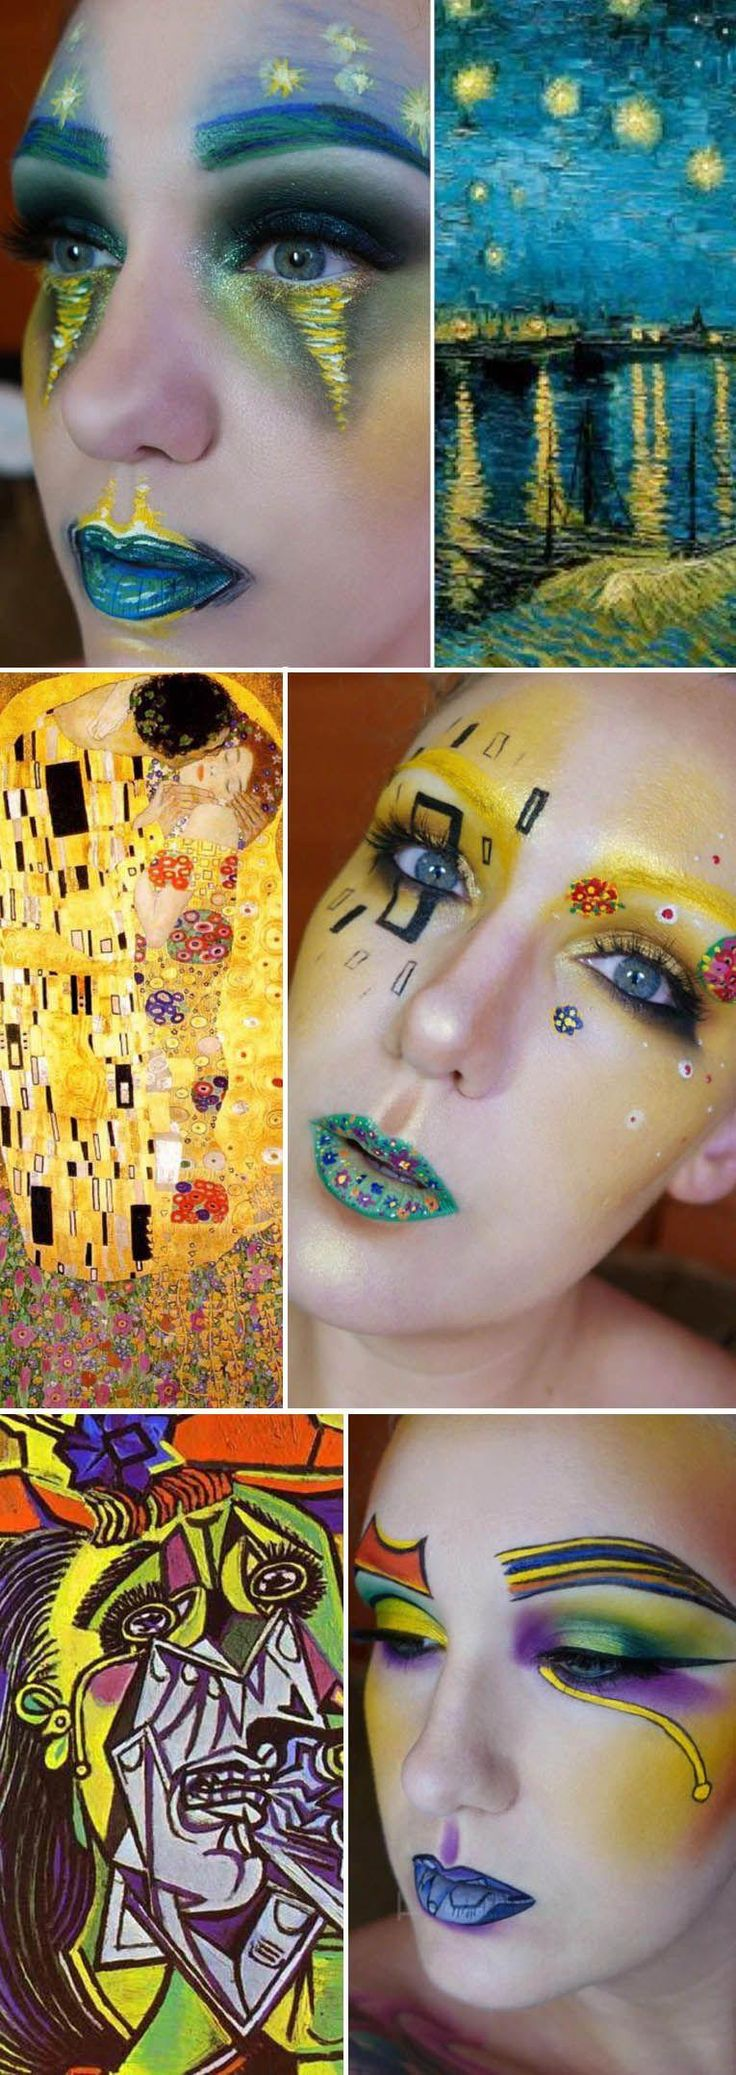 Makeup artist transforms herself into famous paintings